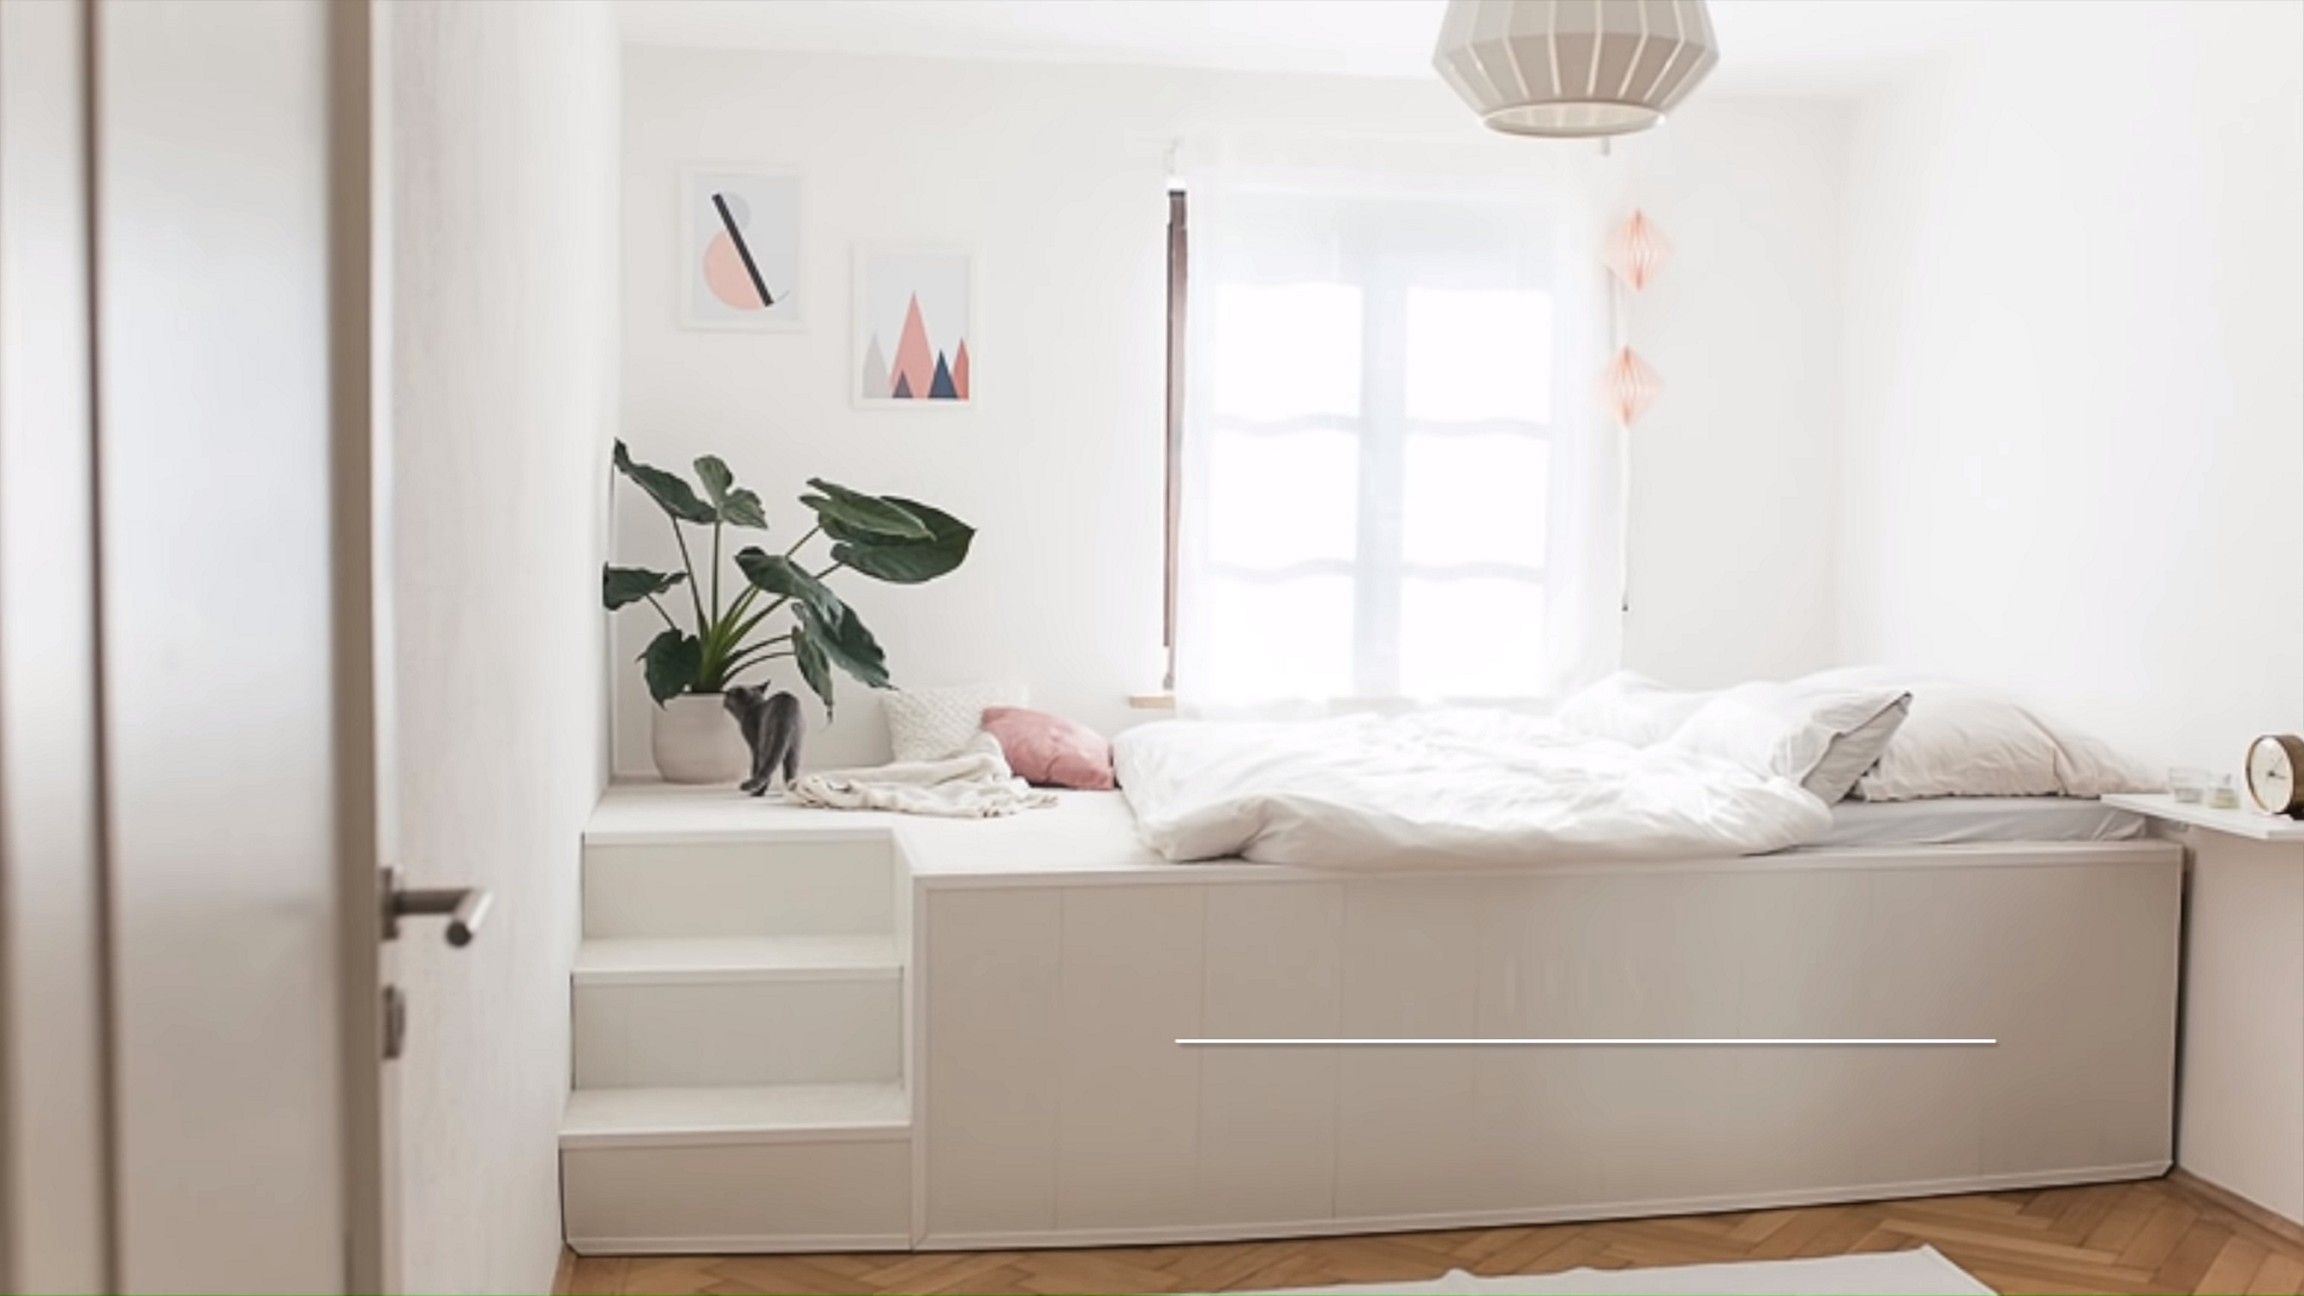 Simple White Podest Bed Design Idea